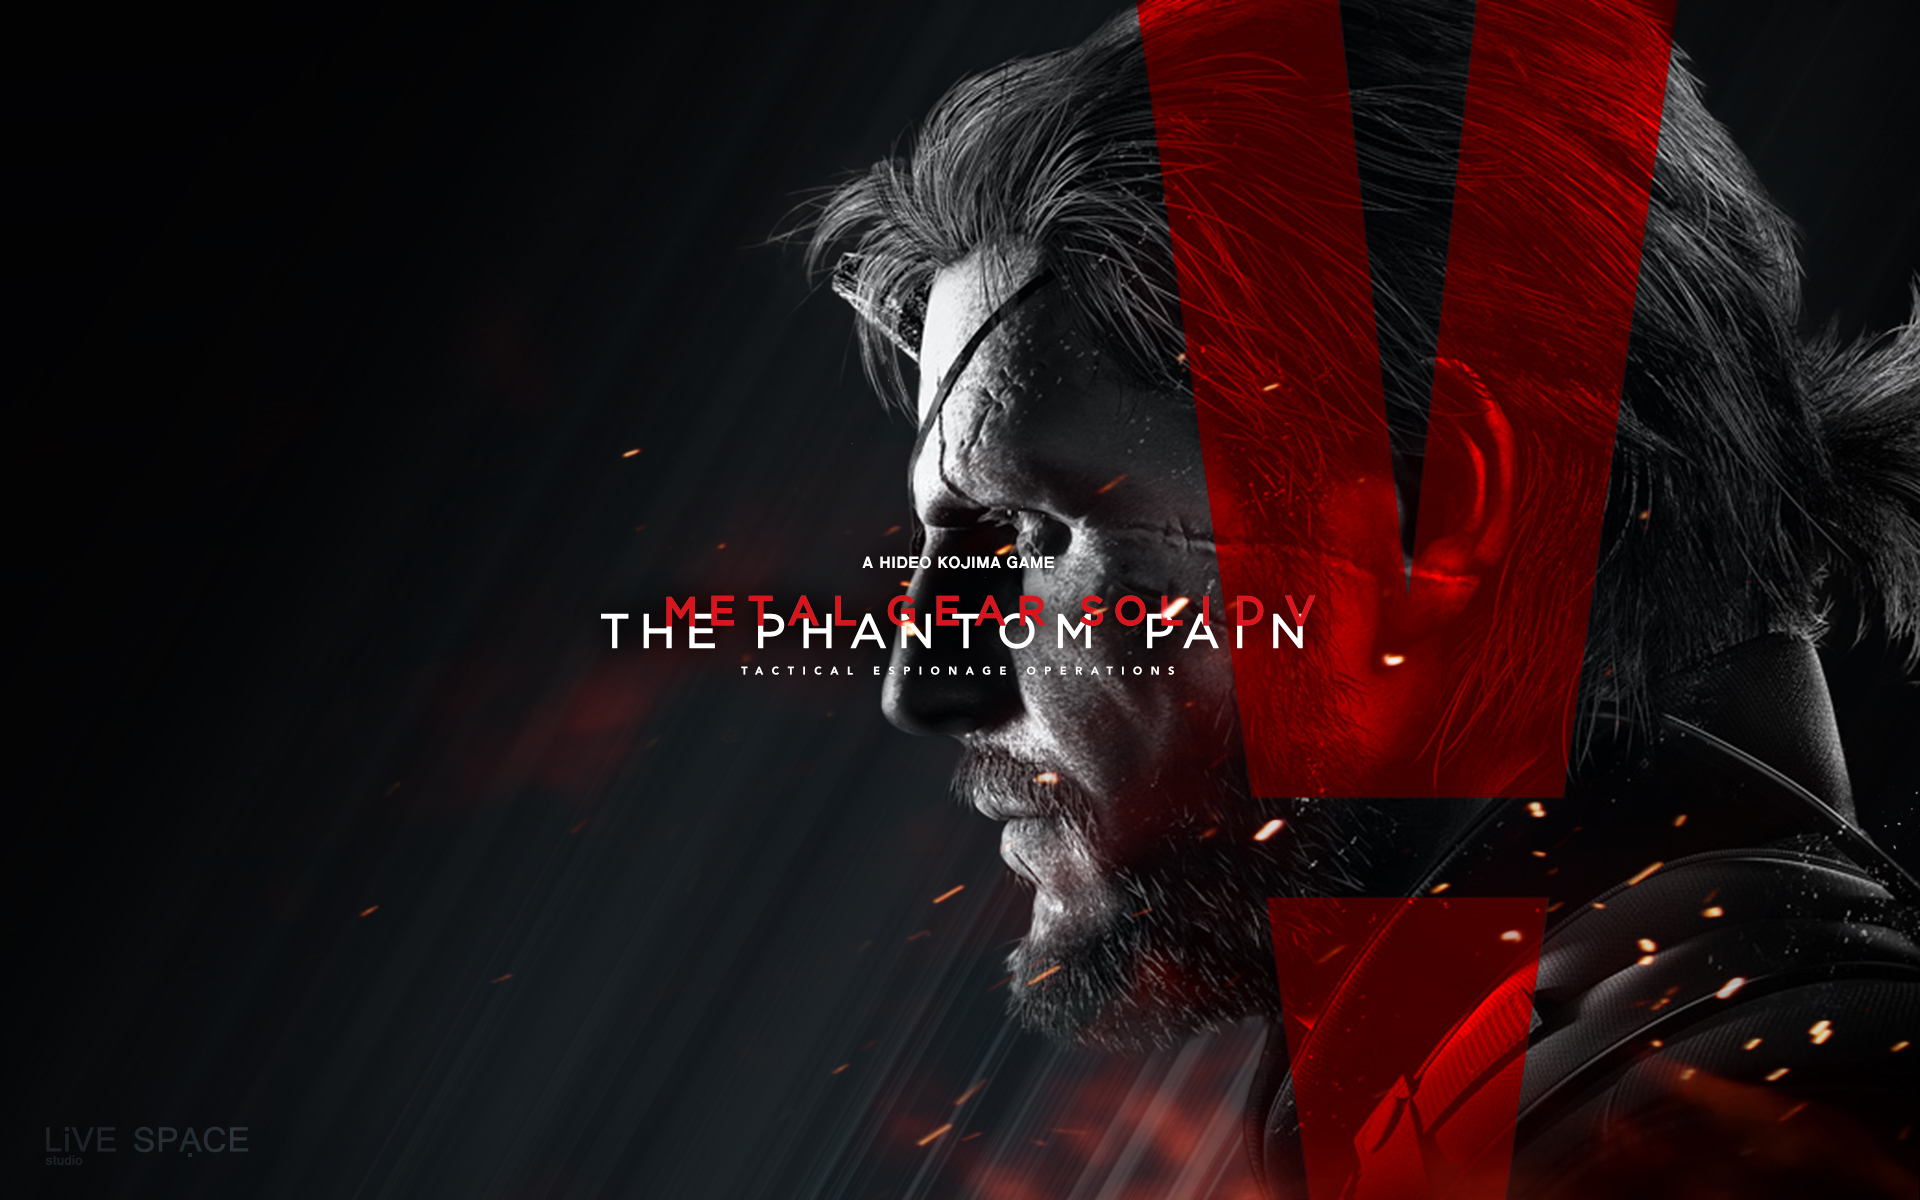 https://i2.wp.com/orig09.deviantart.net/25eb/f/2015/007/8/d/ls_metal_gear_solid_v__the_phantom_pain_by_1n_stereo-d8cz9ym.jpg